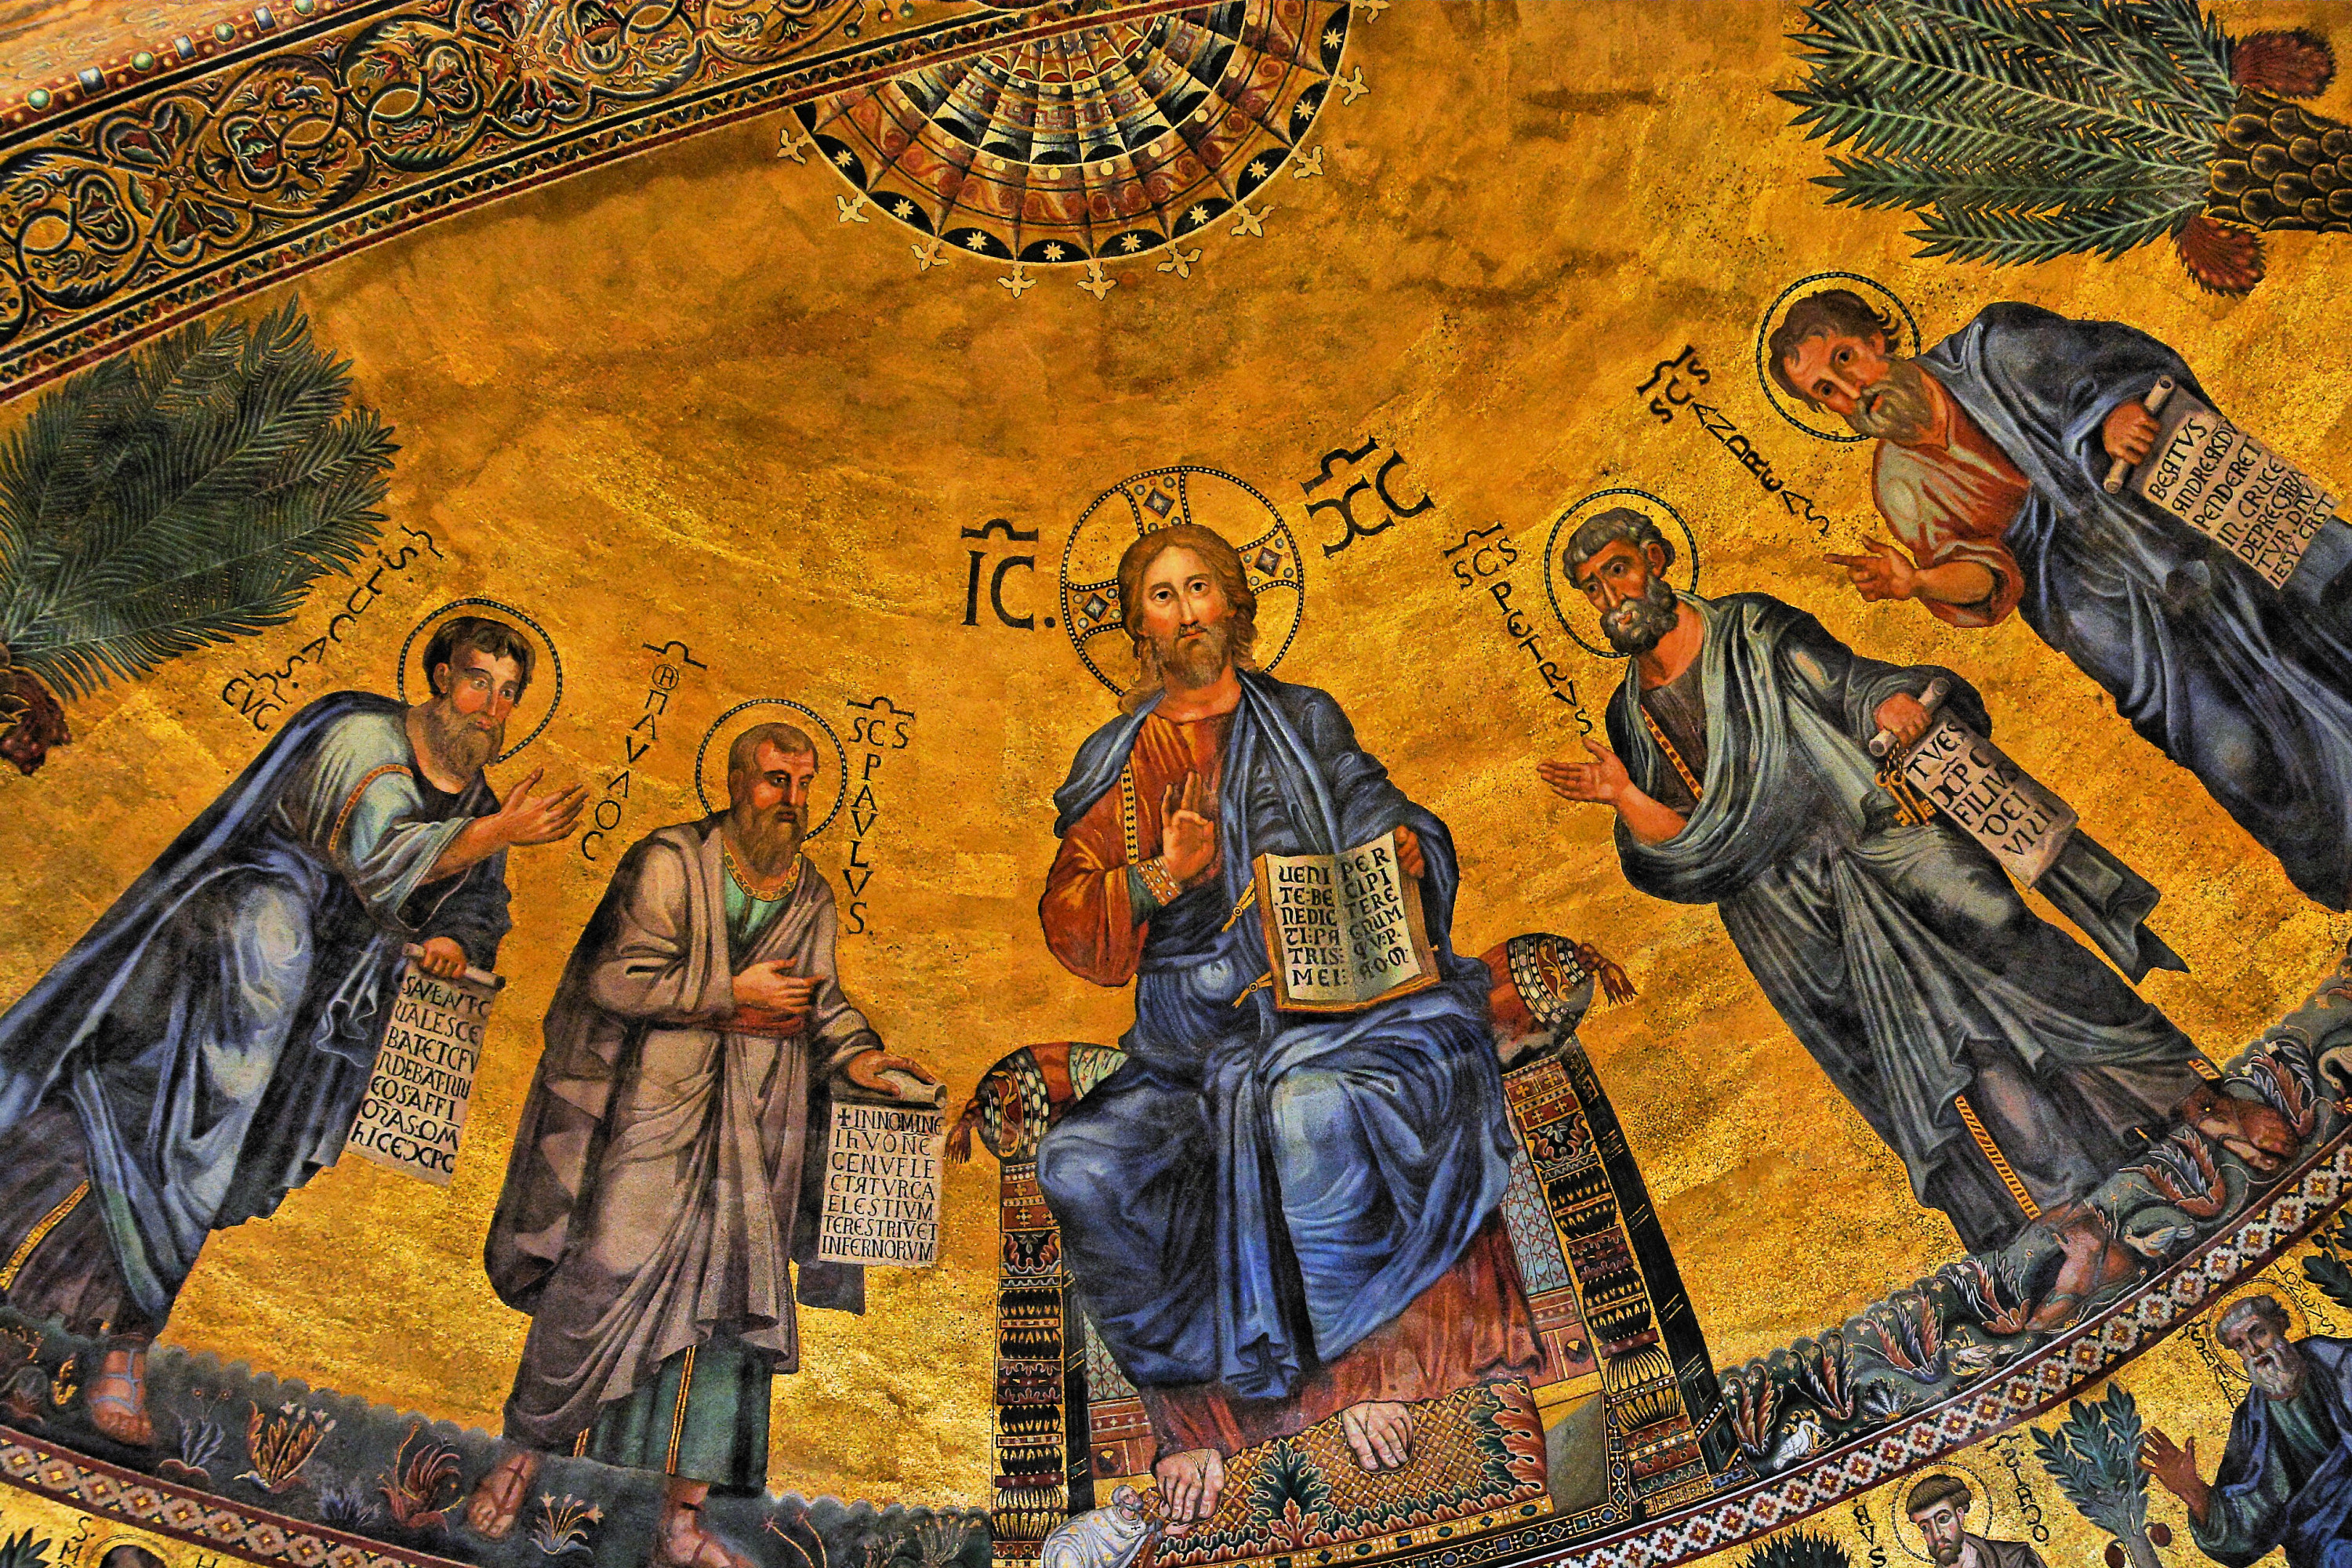 https://upload.wikimedia.org/wikipedia/commons/1/16/Apse_mosaic_of_the_Basilica_of_Saint_Paul_Outside_the_Walls.jpg